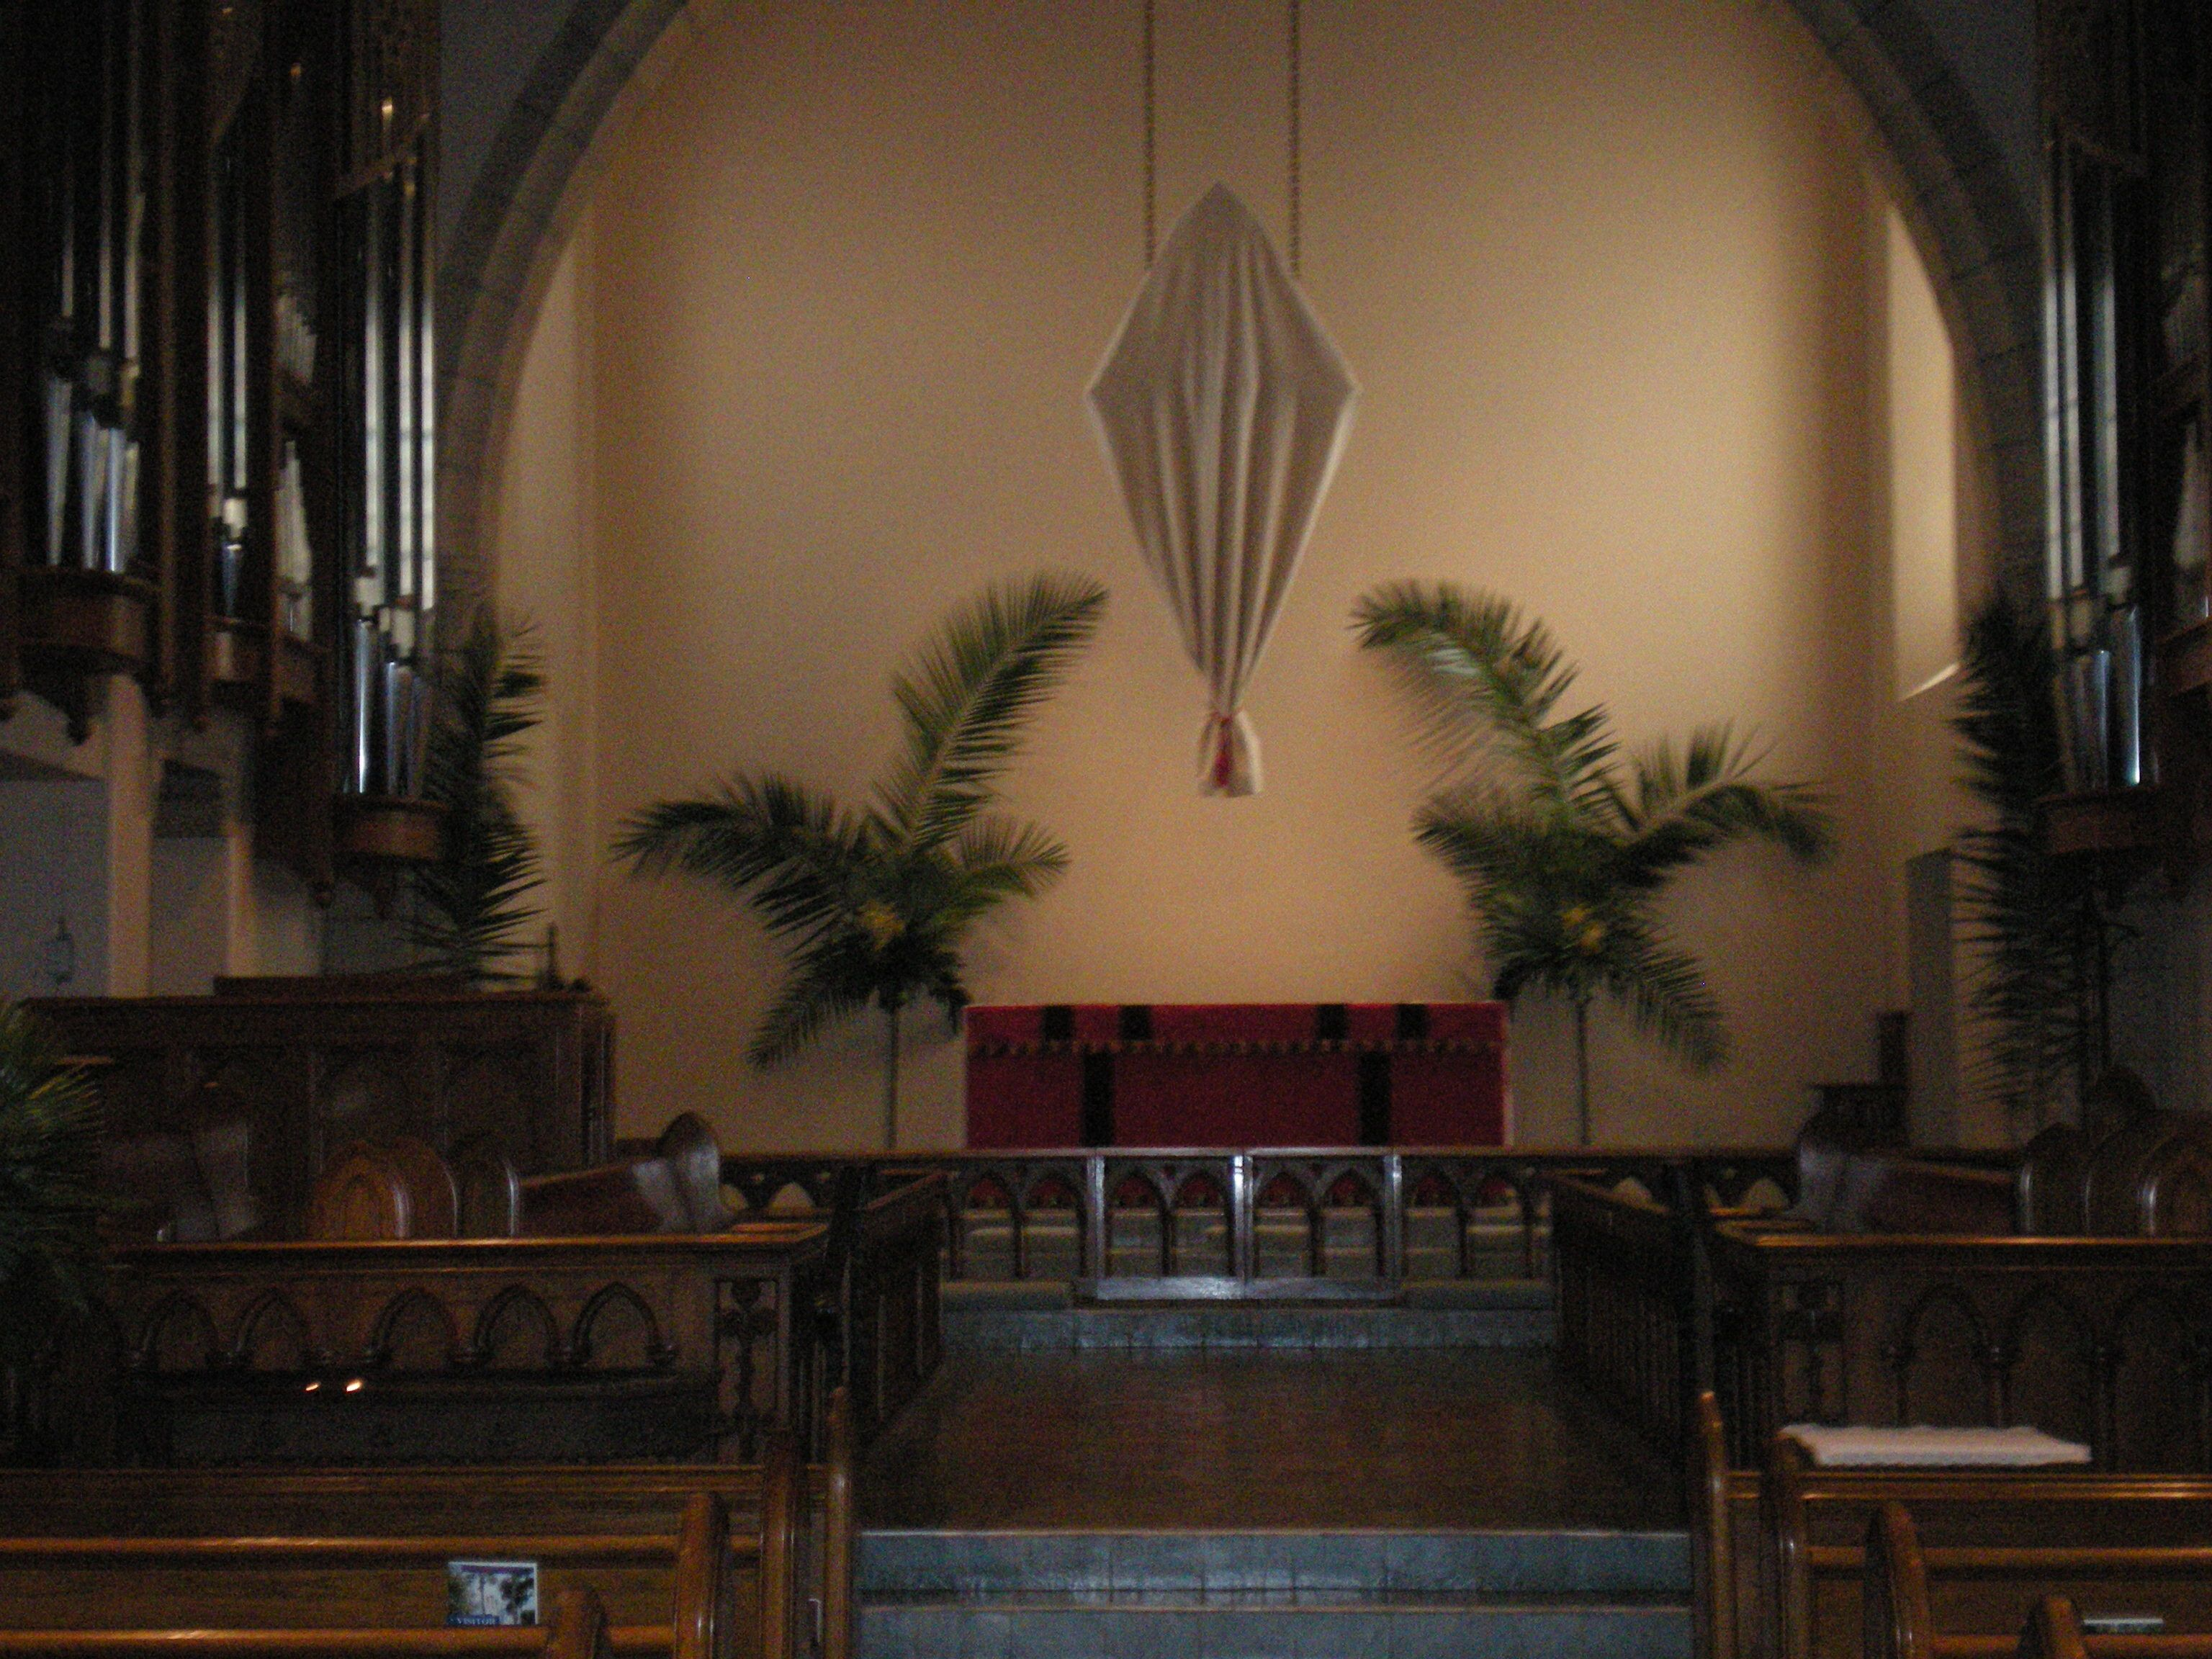 Palm Sunday Worship - 1 April 2012 - The Church of the Redeemer in Sarasota & Pin by orlando rivera on LITURGIA   Pinterest   Religion